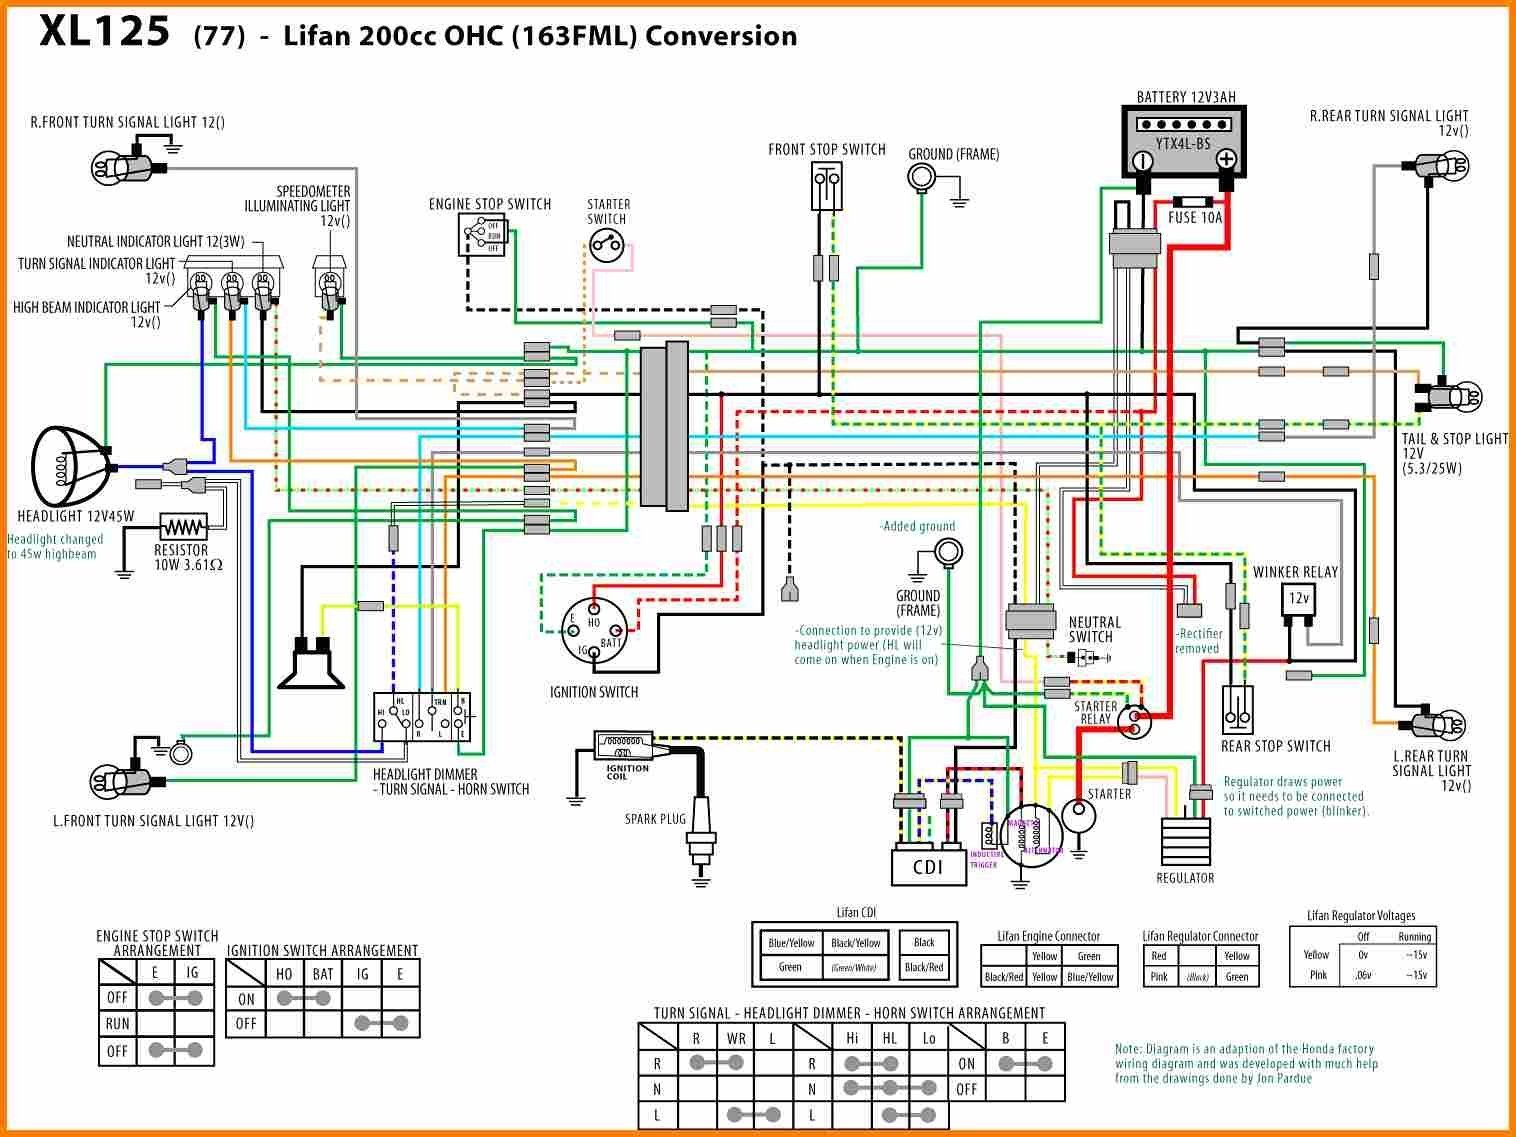 Lifan 110cc Atv Wiring Diagram - Wiring Diagram Online on sunl wiring diagram, nissan wiring diagram, falcon 110 wiring diagram, evinrude wiring diagram, hunter wiring diagram, kawasaki wiring diagram, toyota wiring diagram, kia wiring diagram, dodge wiring diagram, international wiring diagram, bajaj wiring diagram, freightliner wiring diagram, 110cc 4 wheeler wiring diagram, viking wiring diagram, chevrolet wiring diagram, electrical outlet wiring diagram, smc wiring diagram, jeep wiring diagram, honda wiring diagram, new holland wiring diagram,